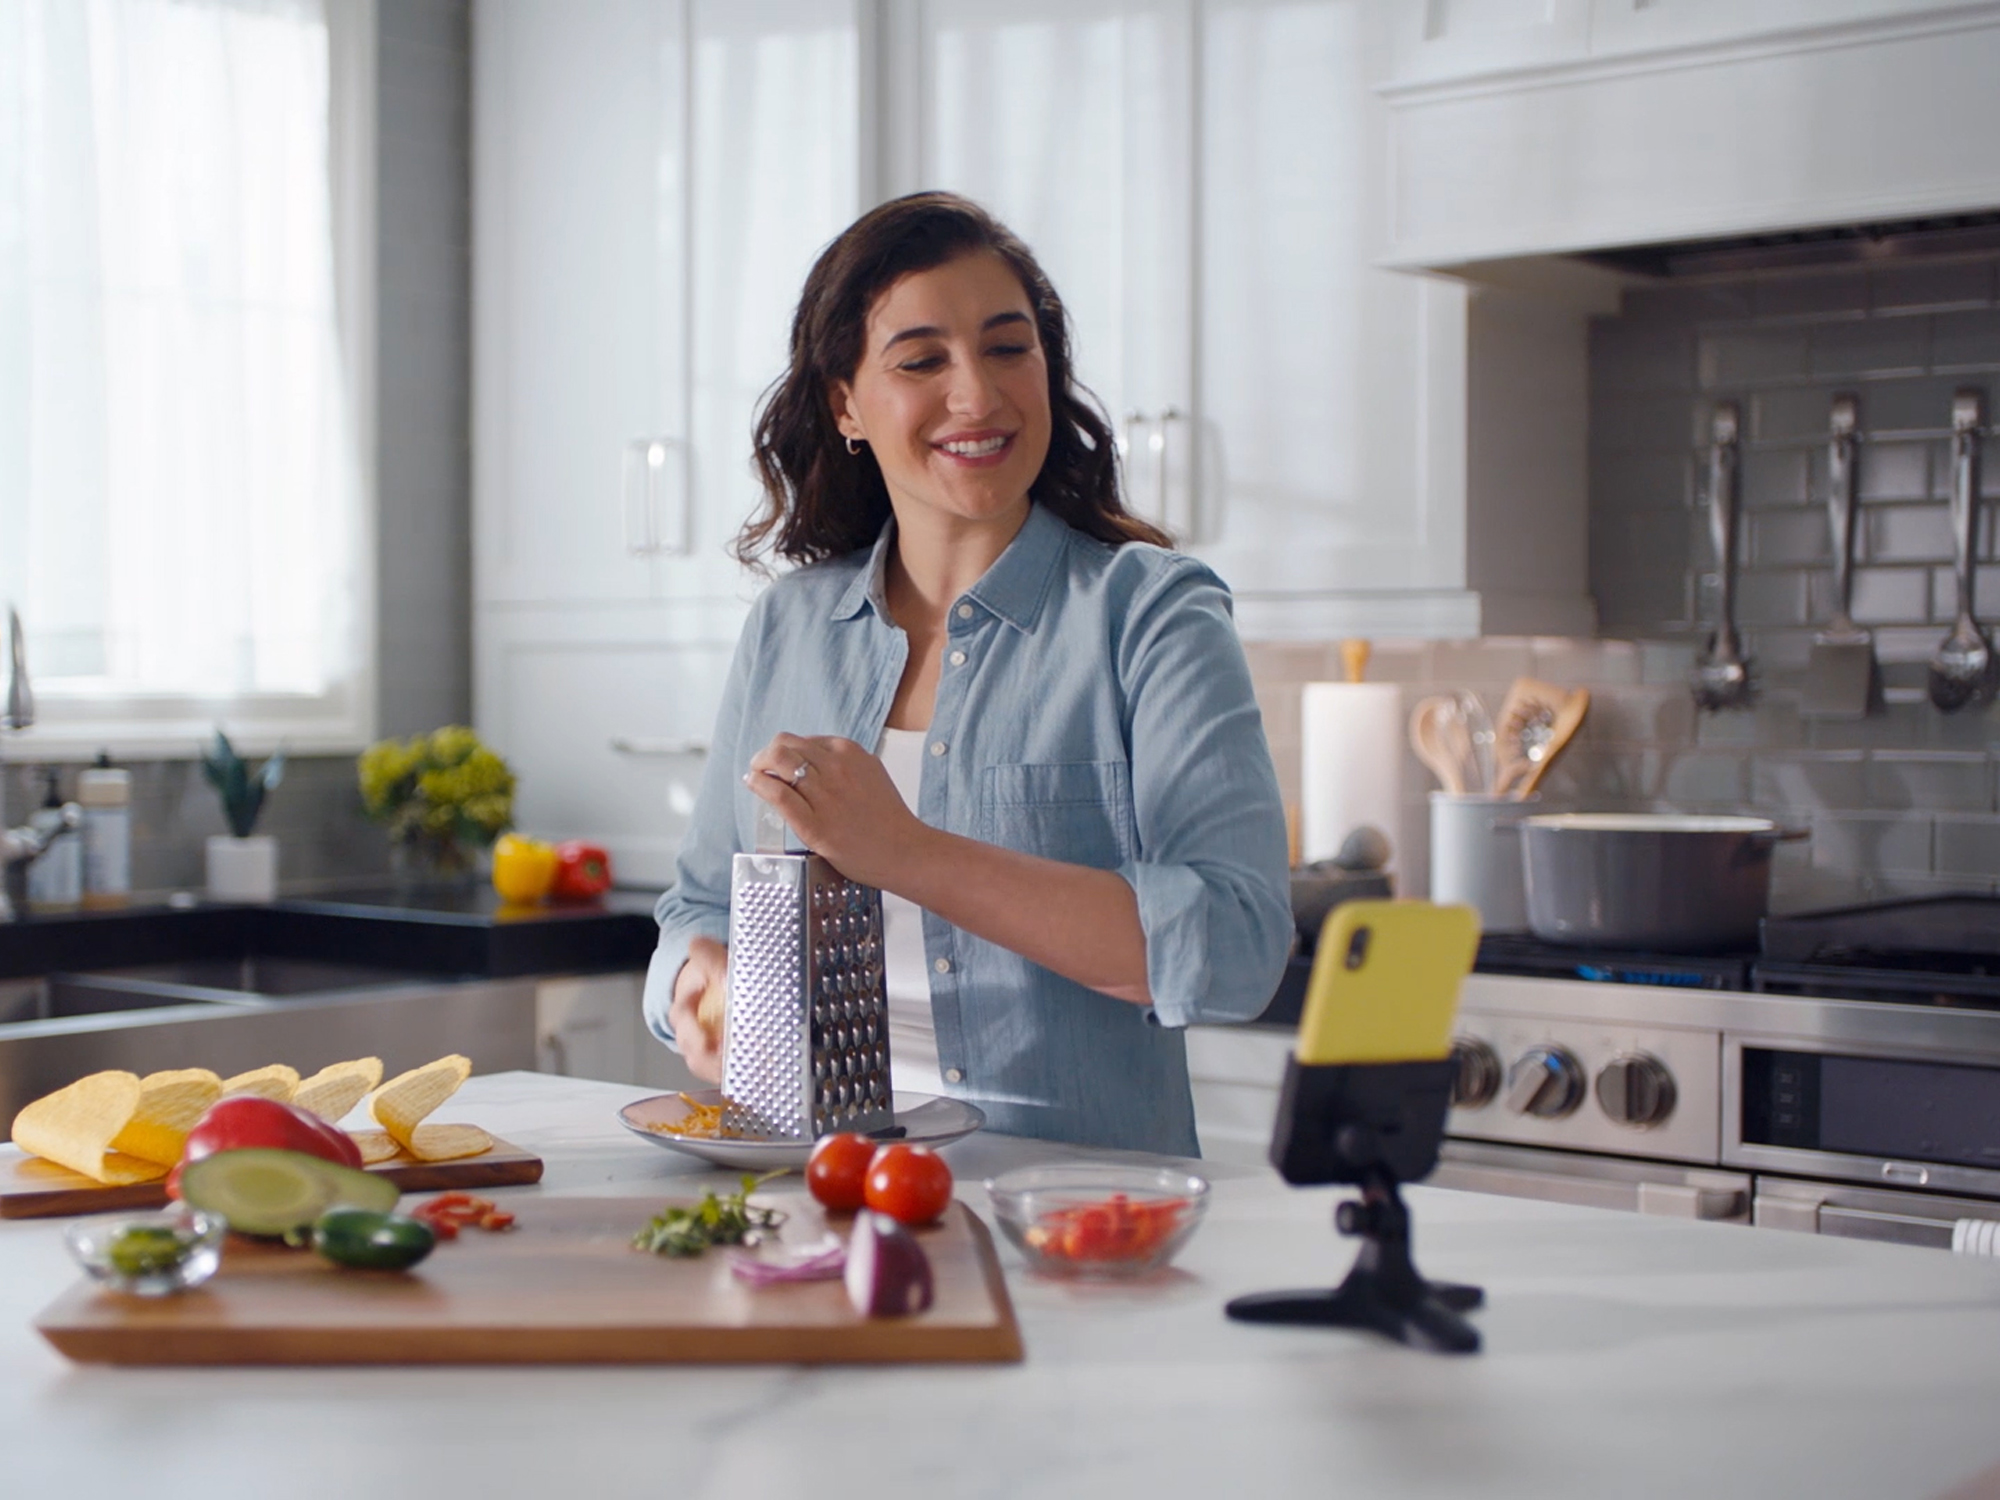 Woman_ with_DeskFone_Video_Chat_in_Kitchen